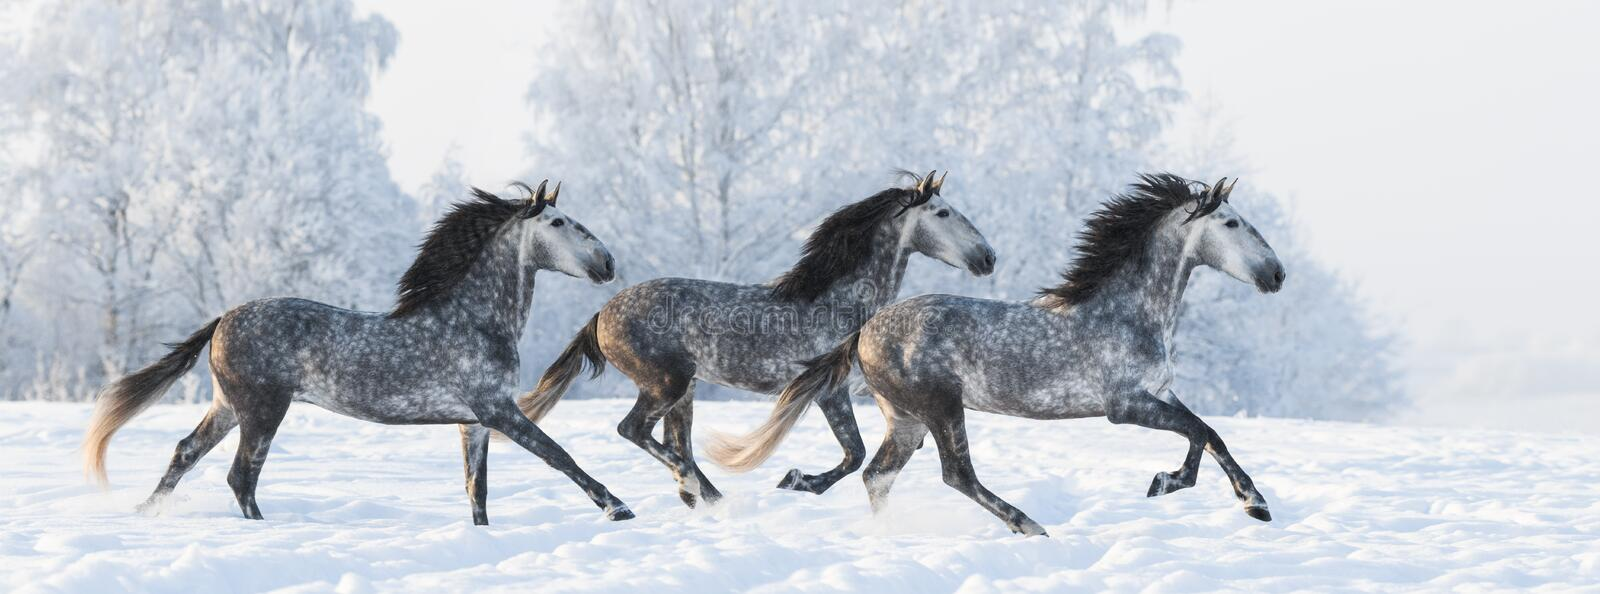 Herd of horses run gallop across snowy field royalty free stock photo